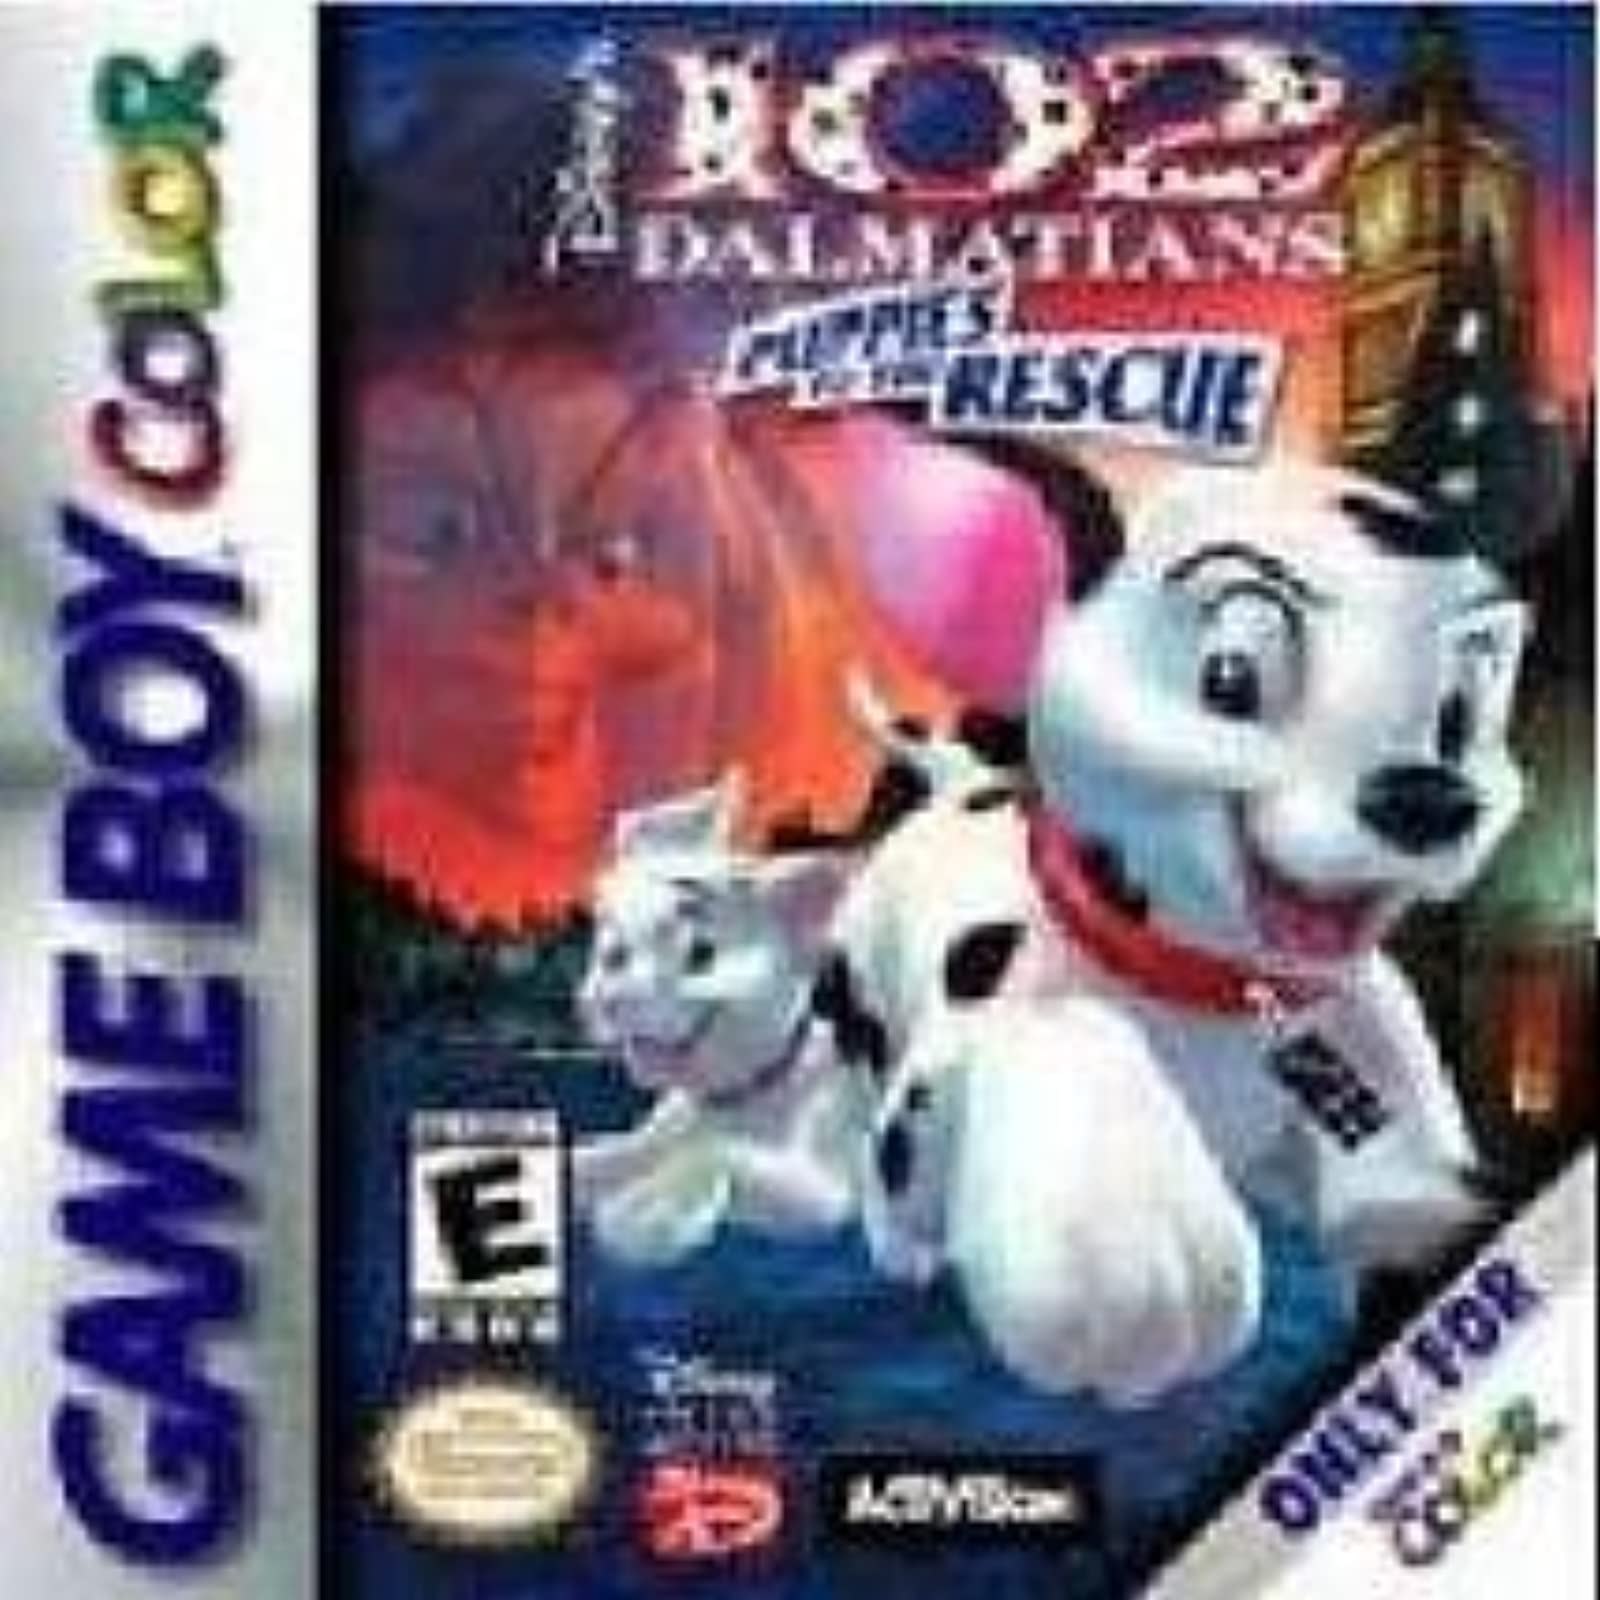 102 Dalmatians: Puppies To The Rescue On Gameboy Color